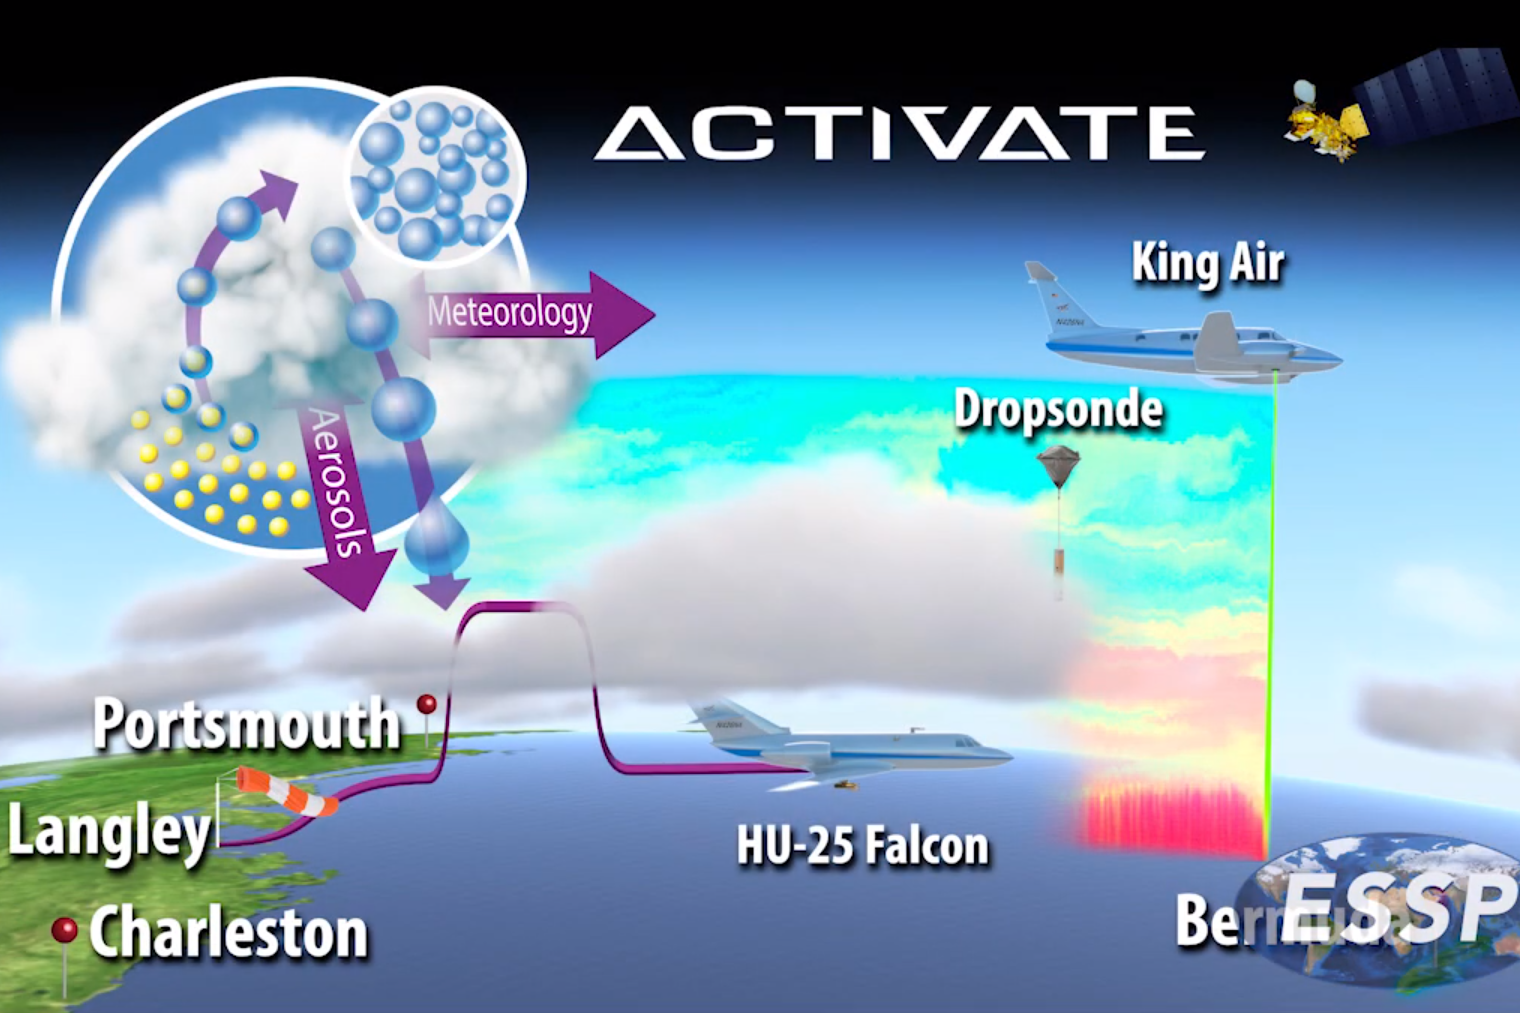 Aerosol Cloud meTeorology Interactions oVer the western ATlantic Experiment (ACTIVATE) Video